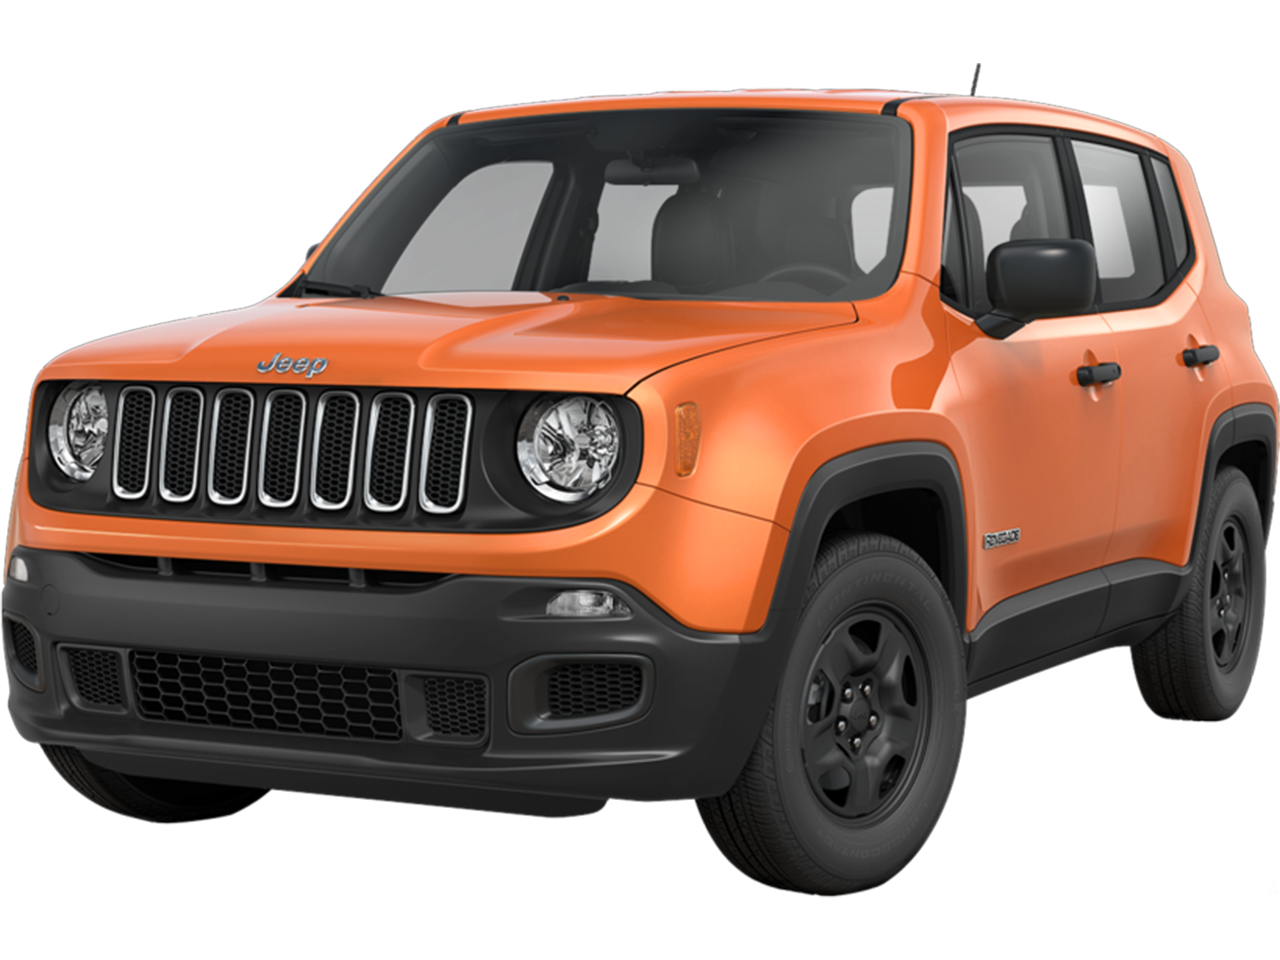 2015 jeep renegade latitude png. Photos informations articles